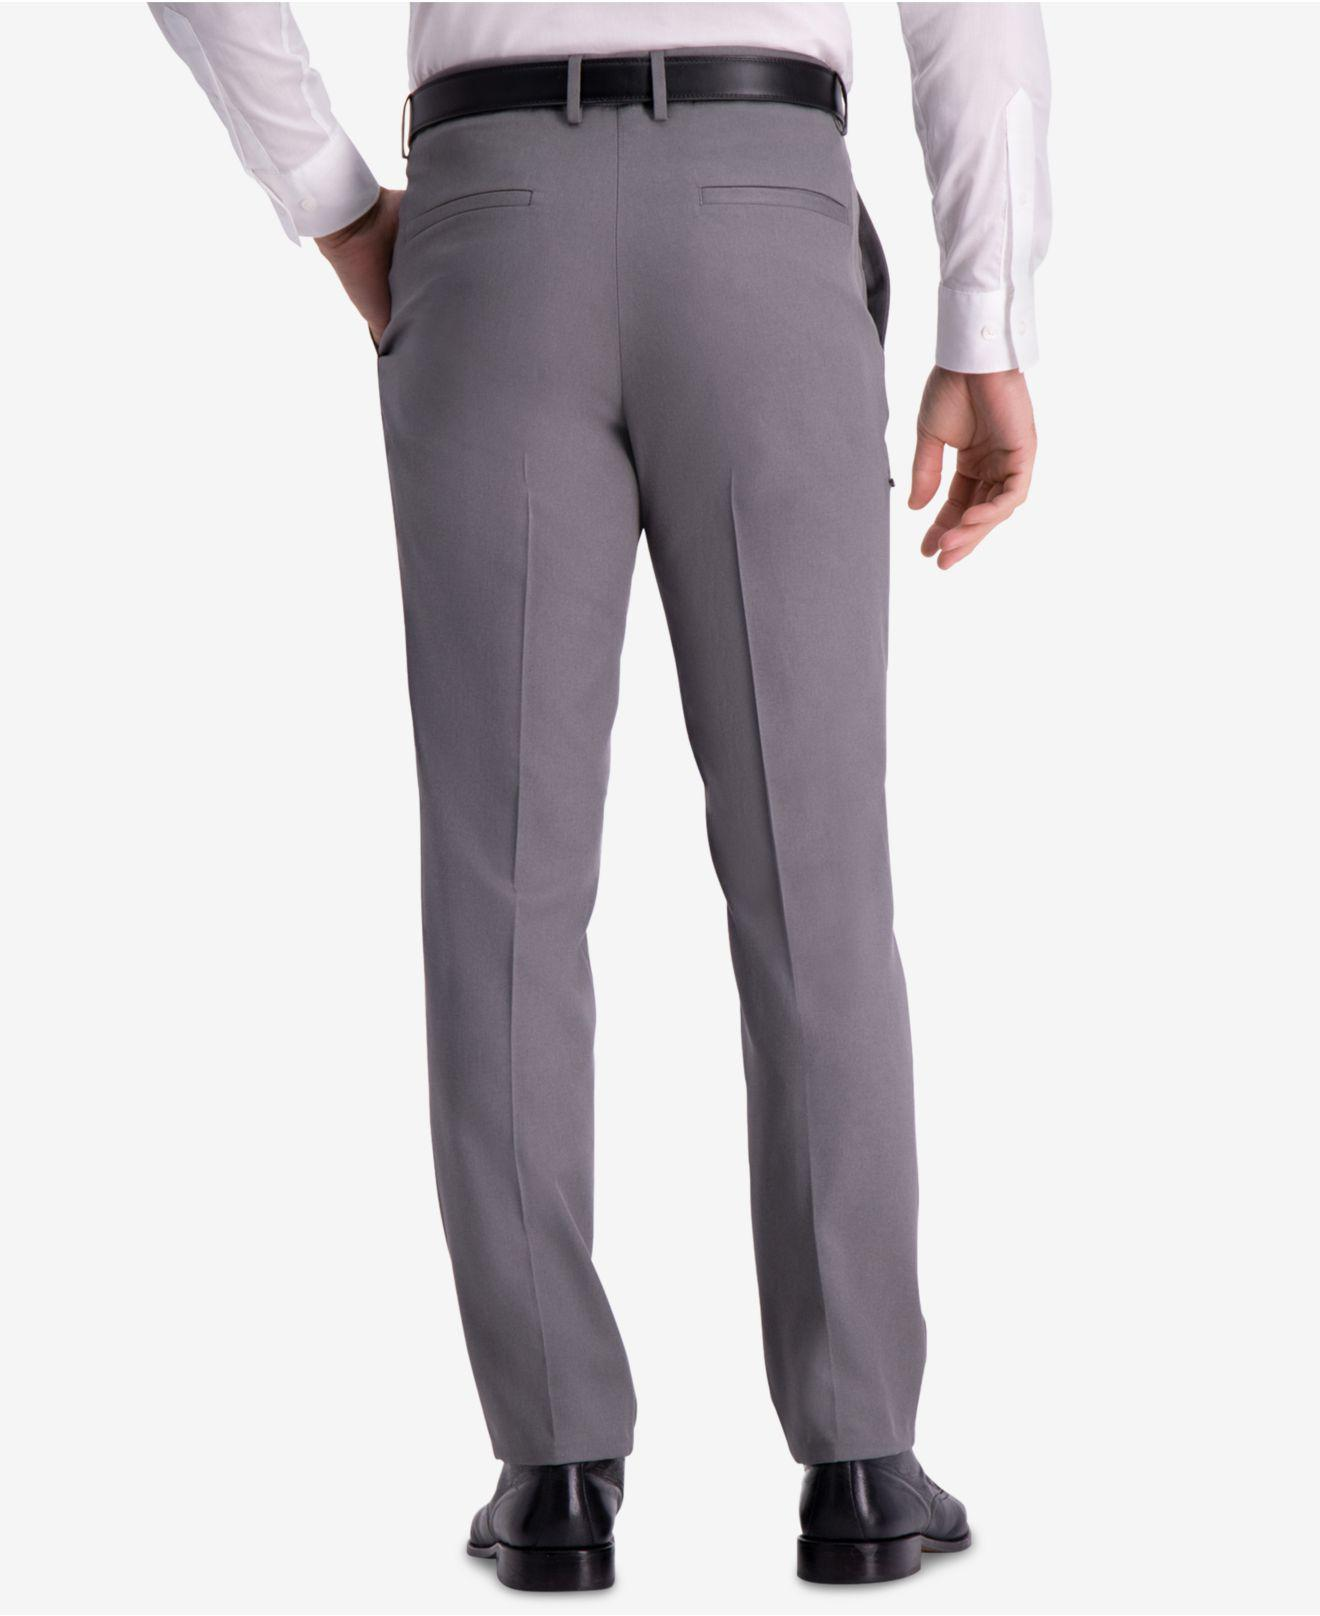 Lyst - Kenneth Cole Reaction Technicole Slim-fit Performance Tech Pocket  Dress Pants in Gray for Men 034e8ed1f